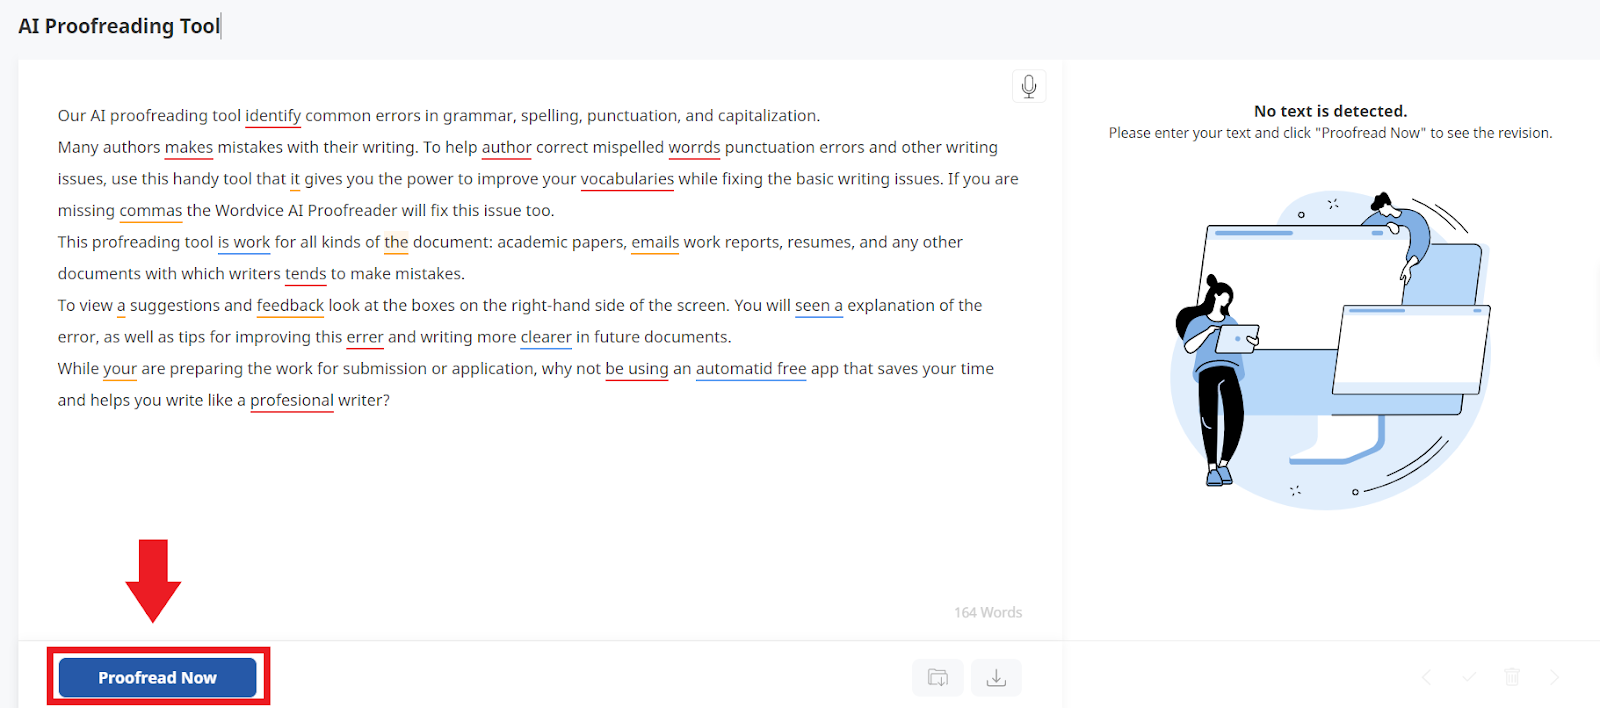 ai proofreading tool demo, red box highlighting proofread now button